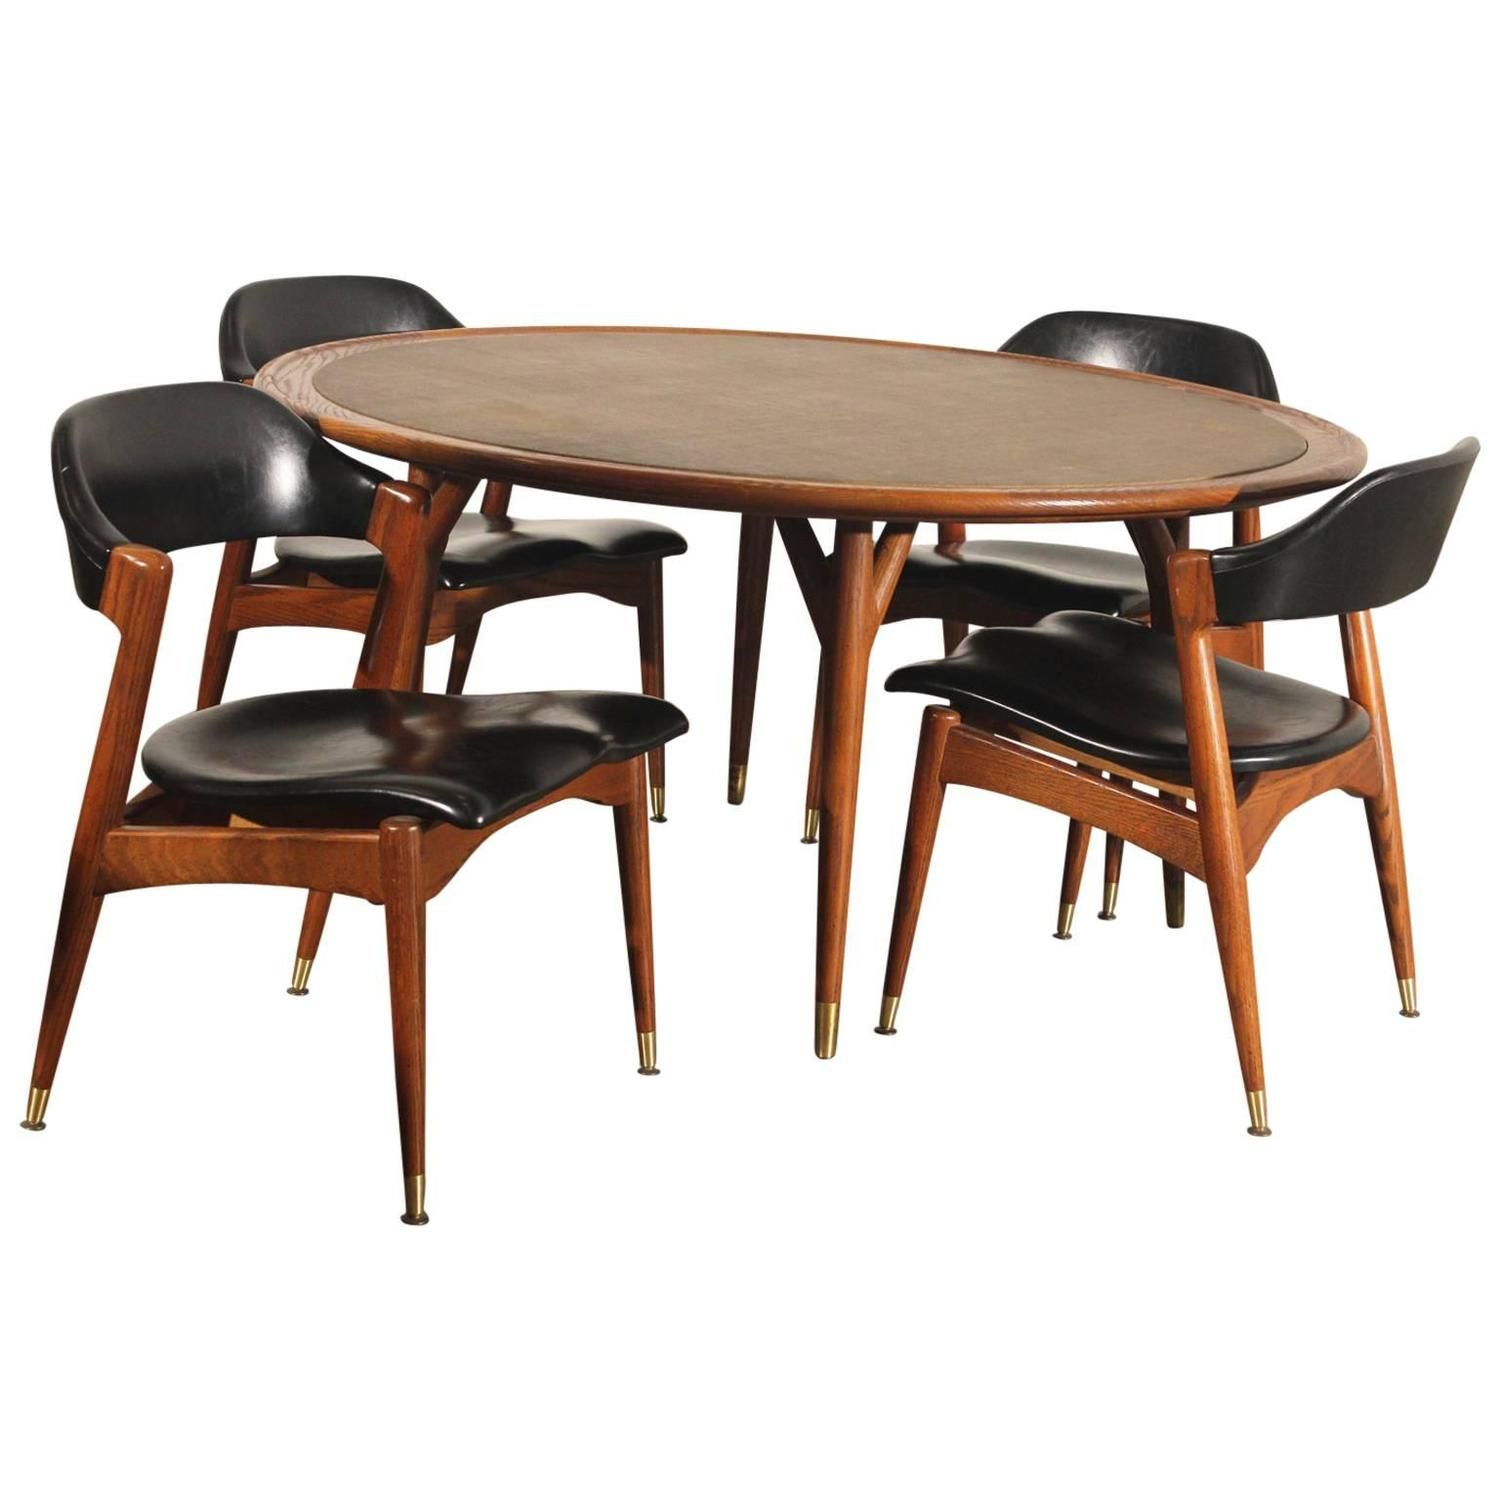 americana casual game table chairs by jack van der molen for